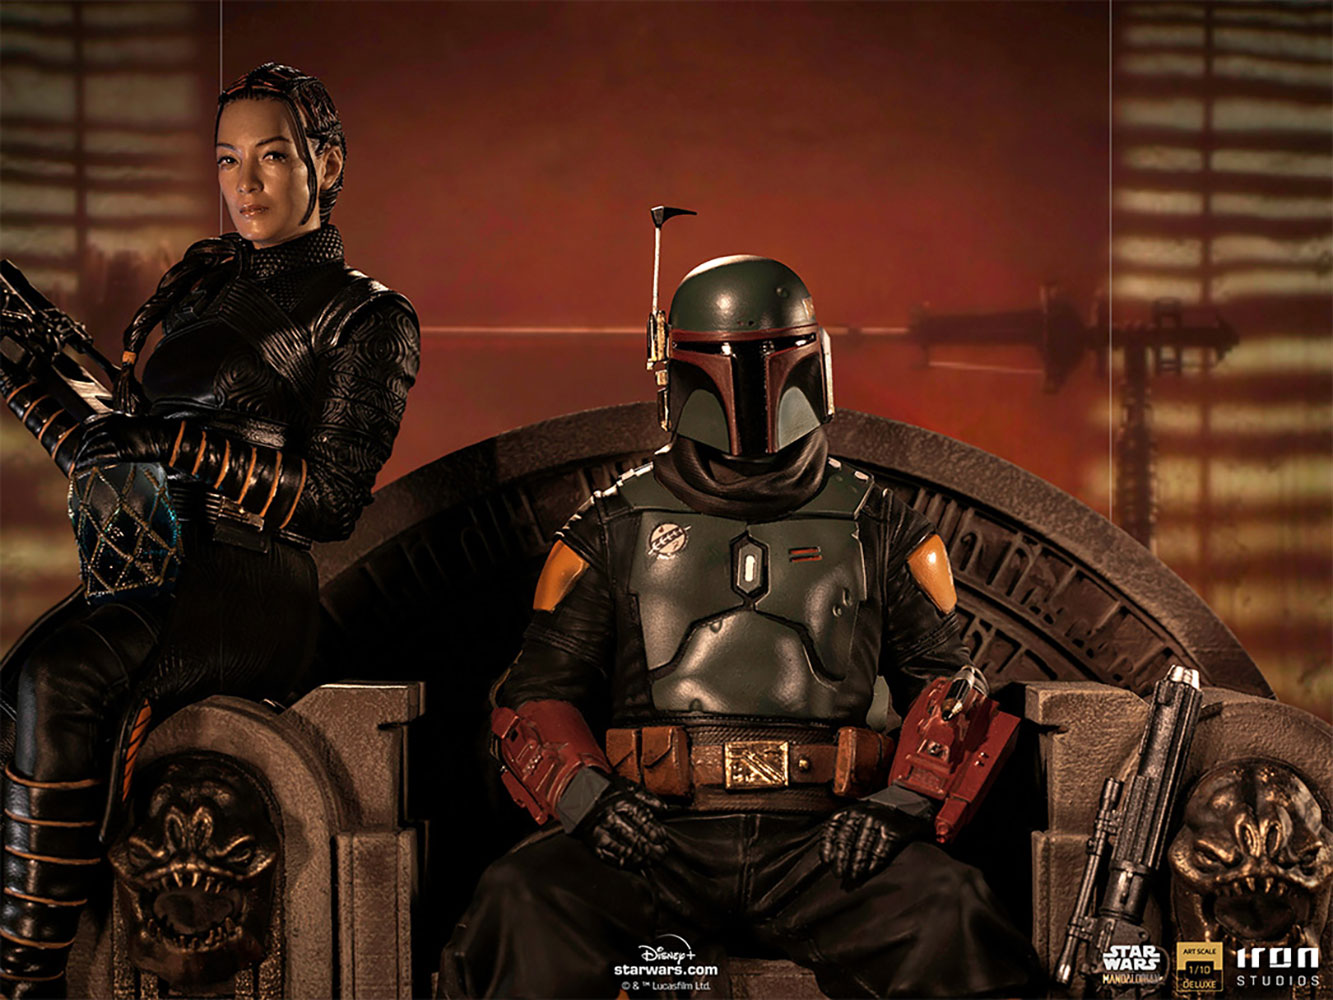 boba-fett-and-fennec-shand-110-scale-statue-star-wars-gallery-60f1f8fc53a14